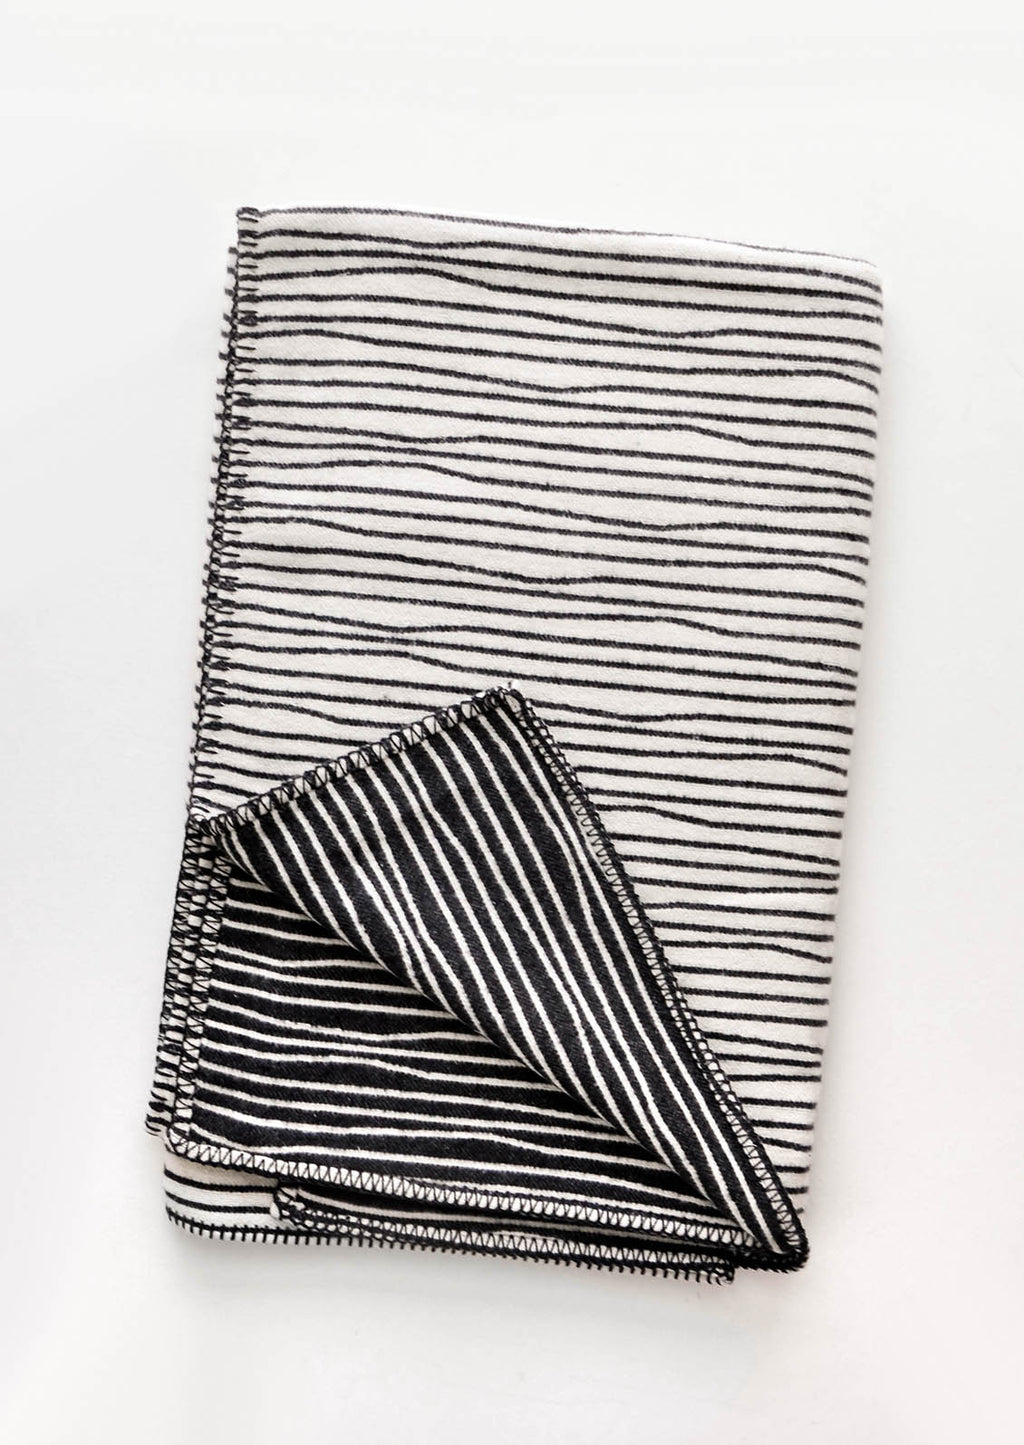 Ivory / Charcoal: Plush throw blanket with allover wavy lines print in black on white